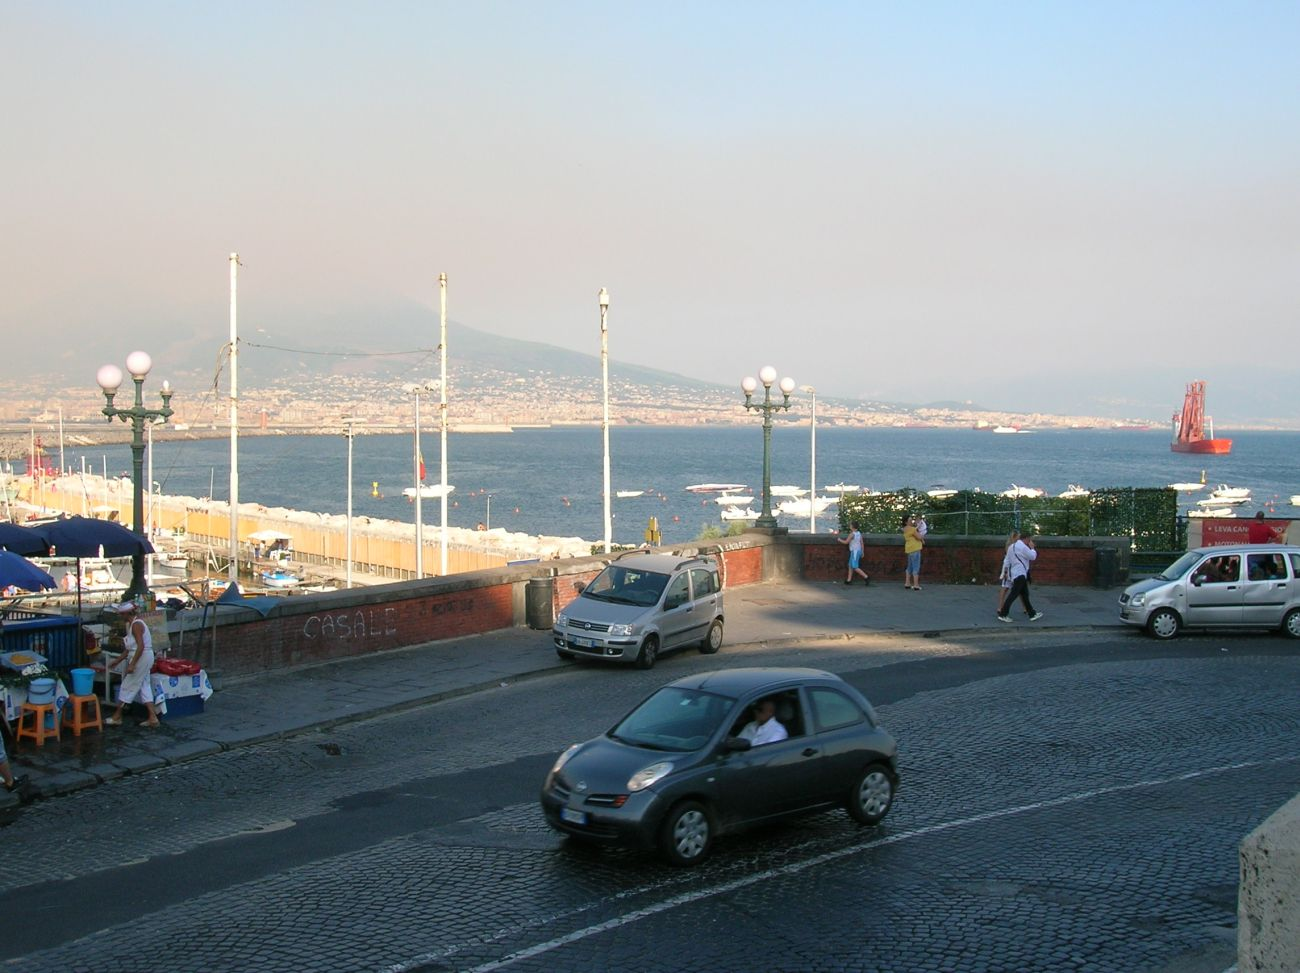 PANORAMA FROM VIA CARACCIOLO